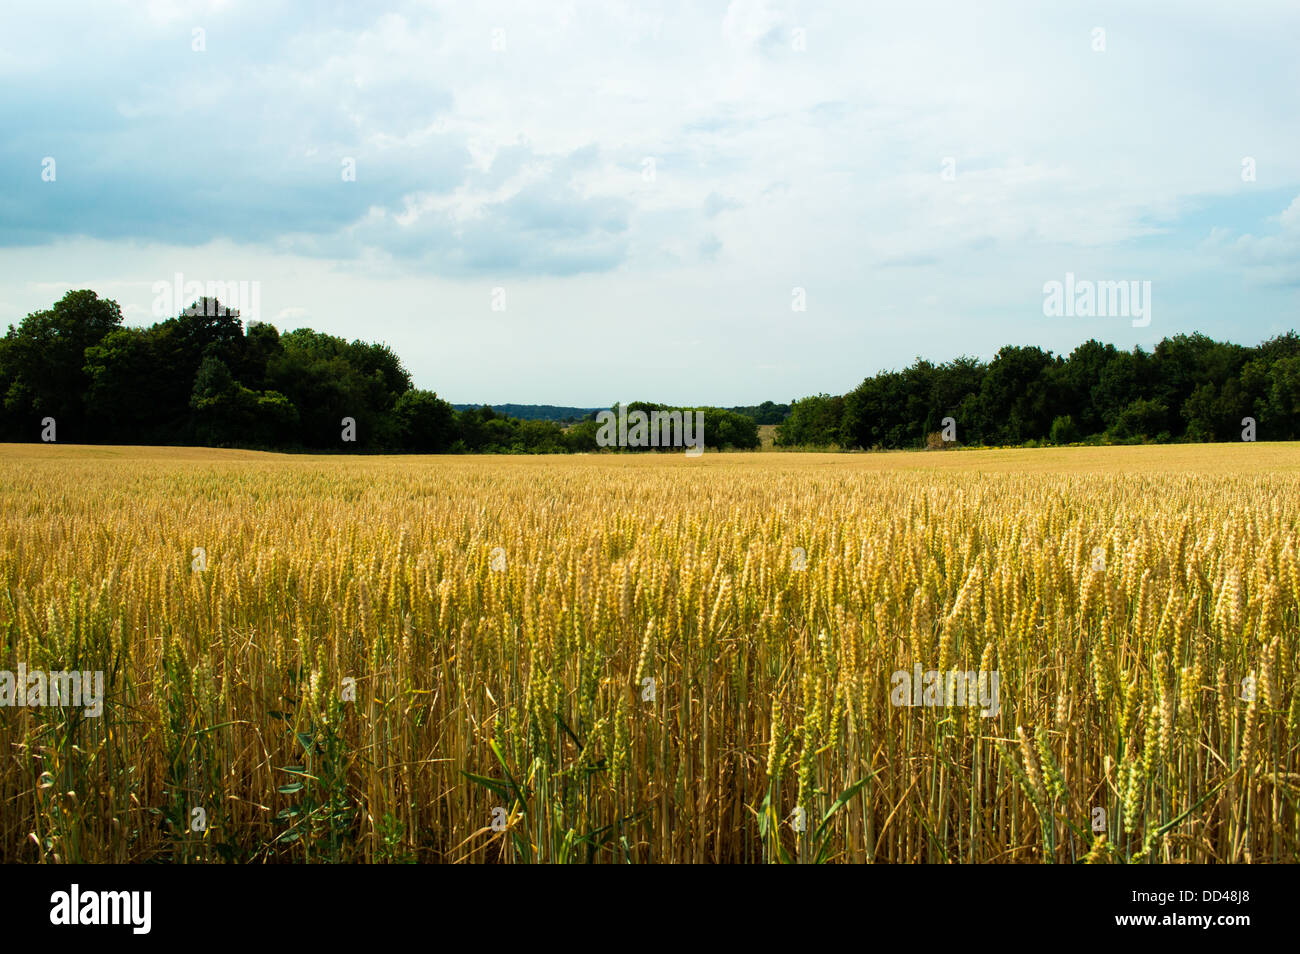 wheat field in the countryside outside London - Stock Image